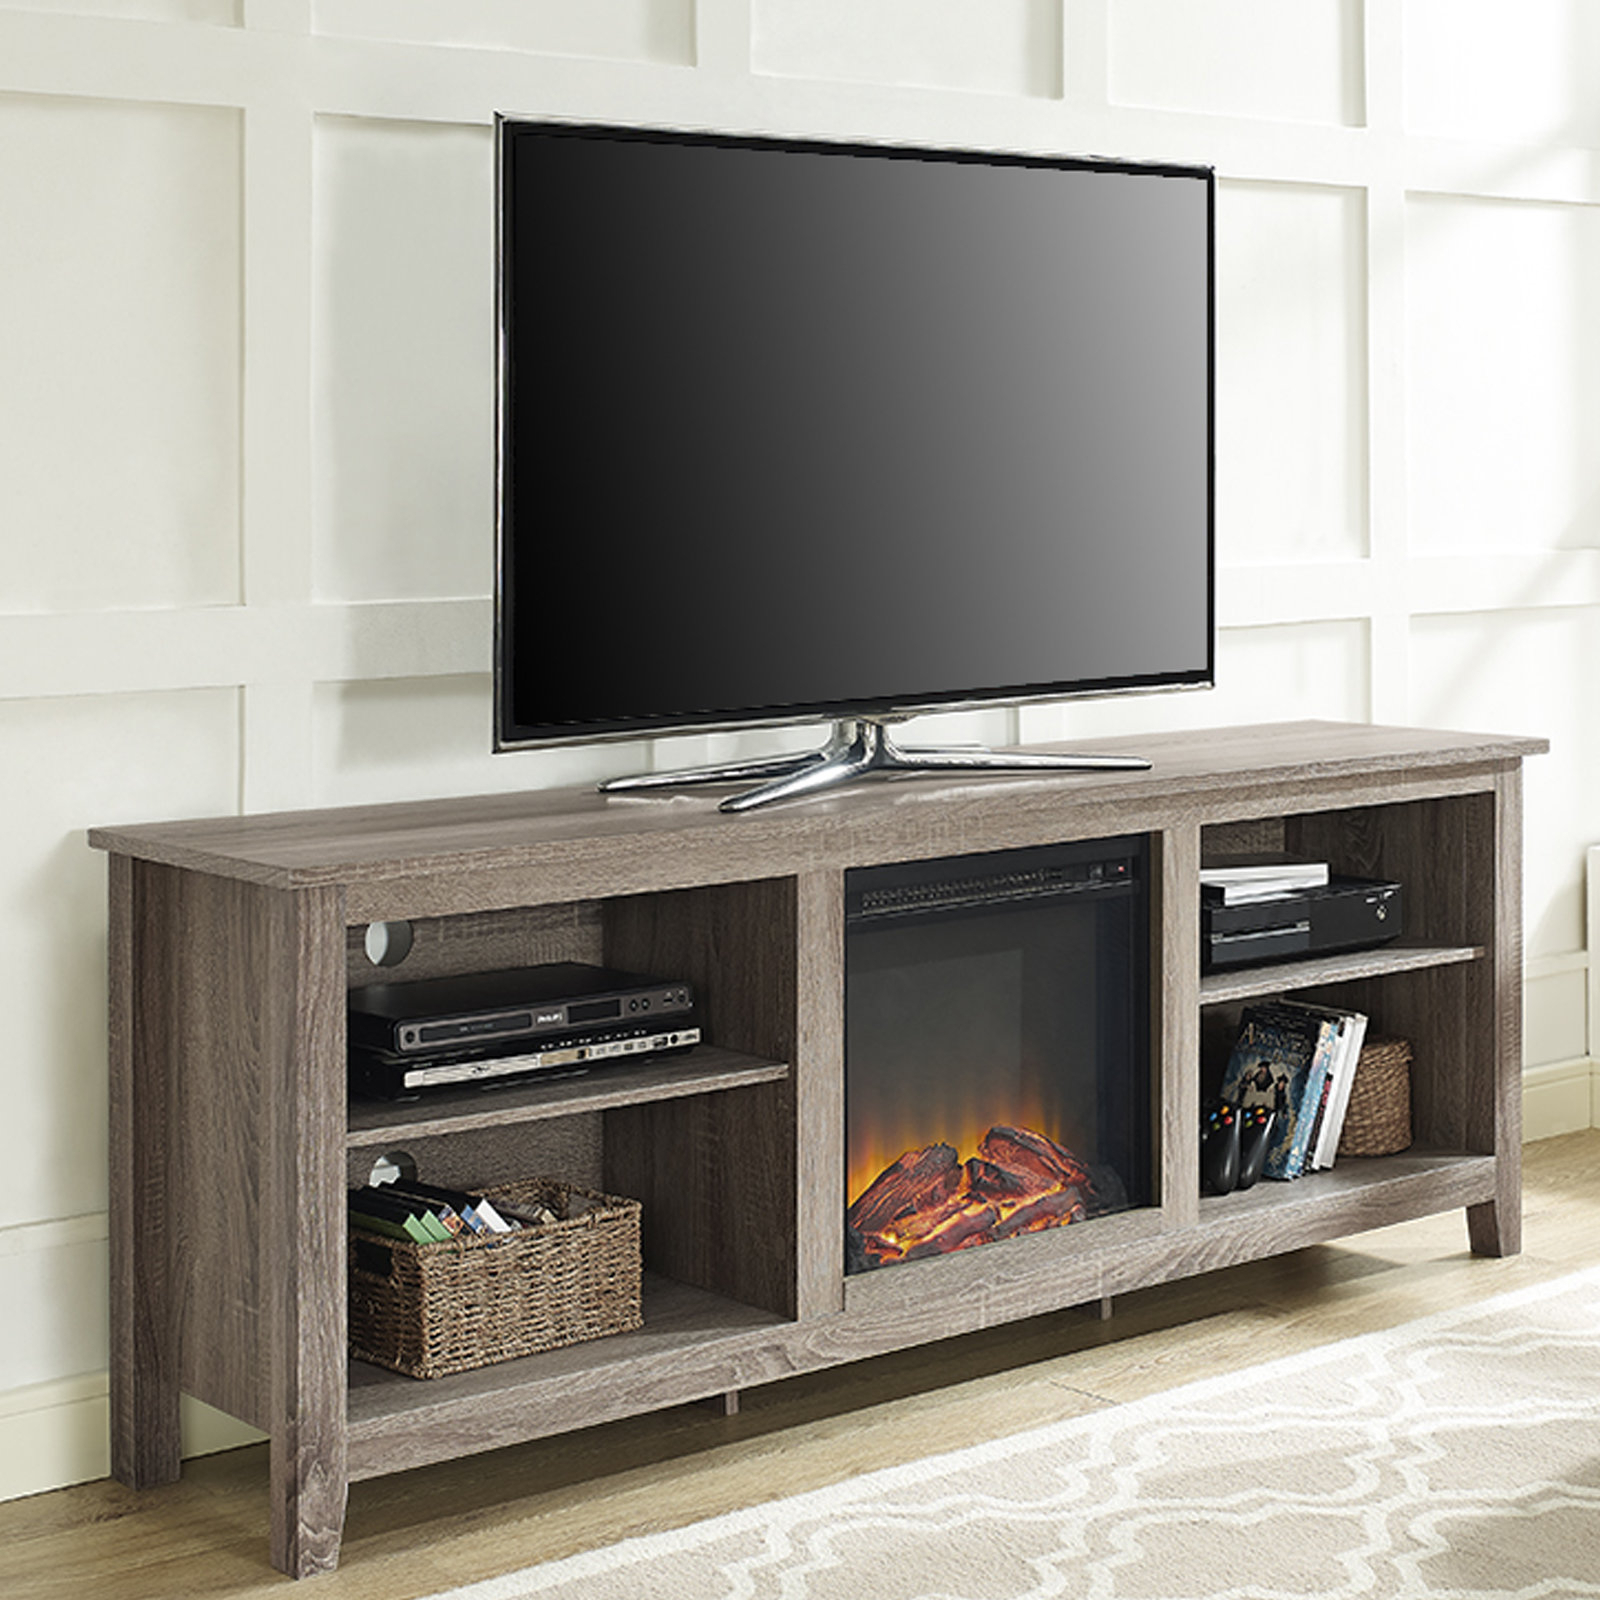 Fireplace Tv Stands & Entertainment Centers You'll Love | Wayfair (View 24 of 30)